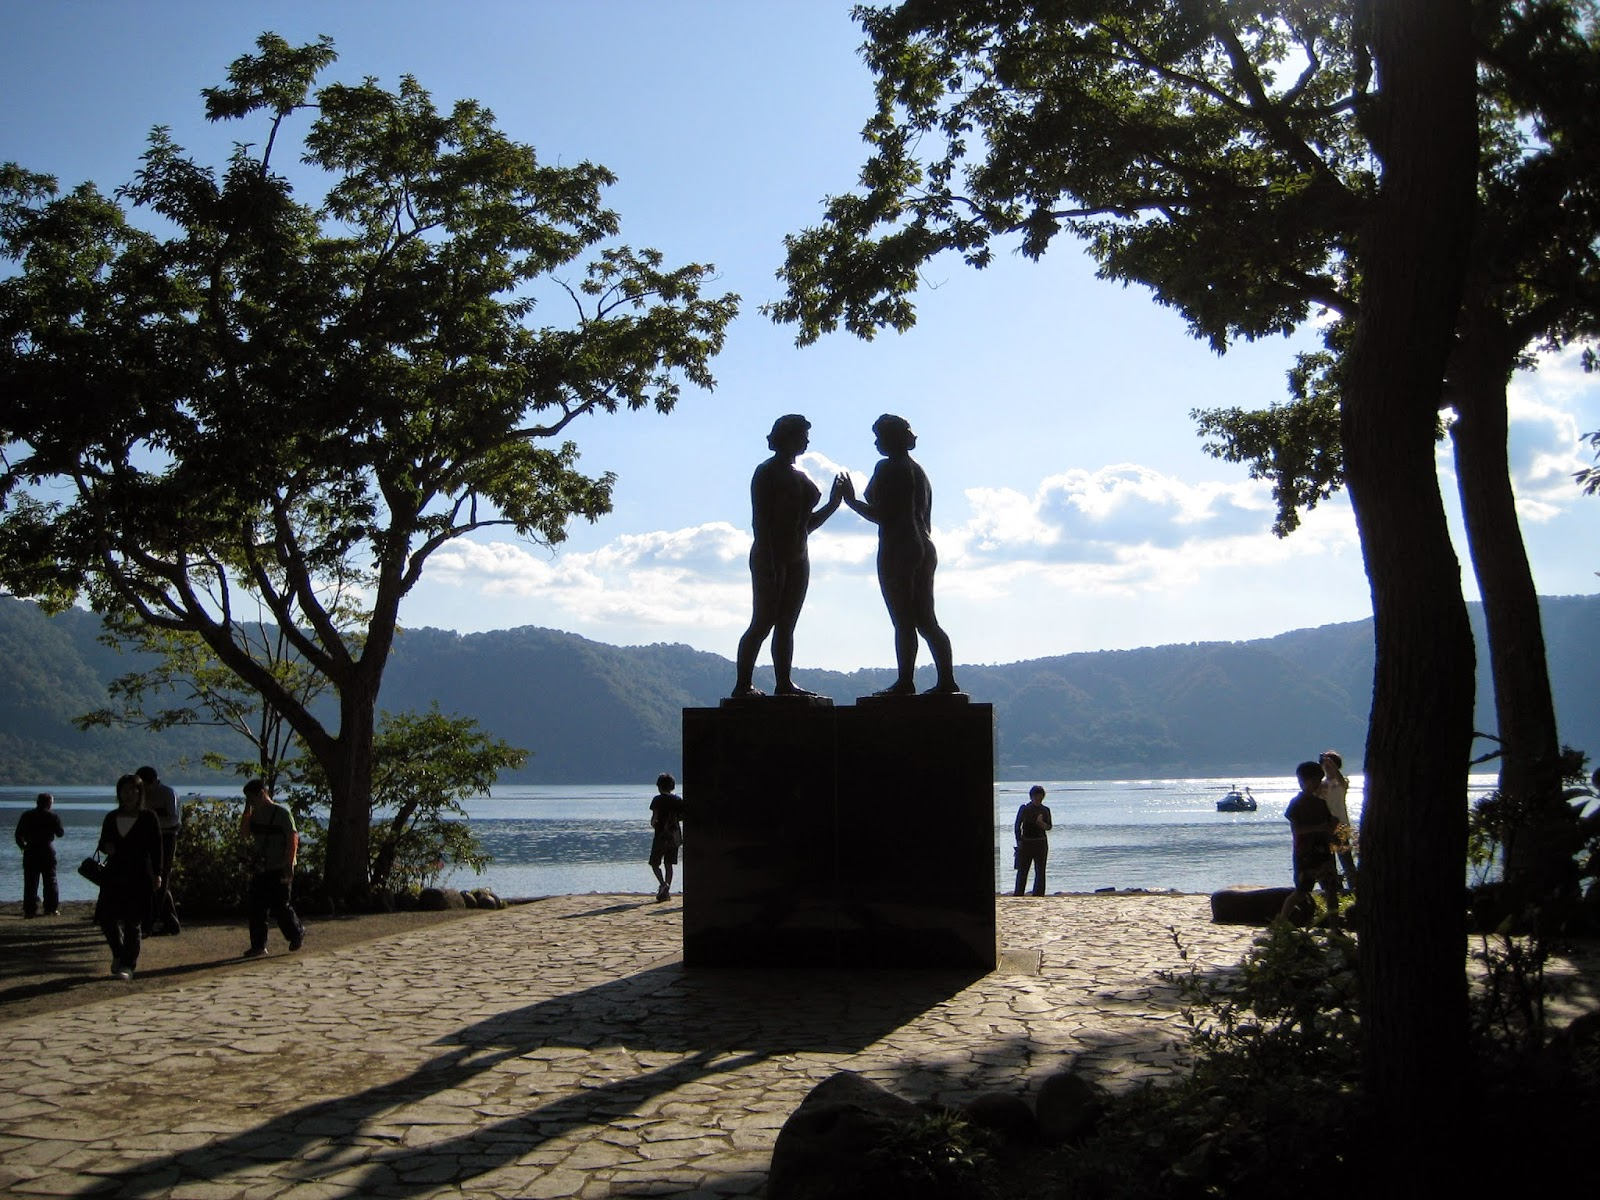 Statue of Maidens Lake Towada Towadako 十和田湖 乙女の像